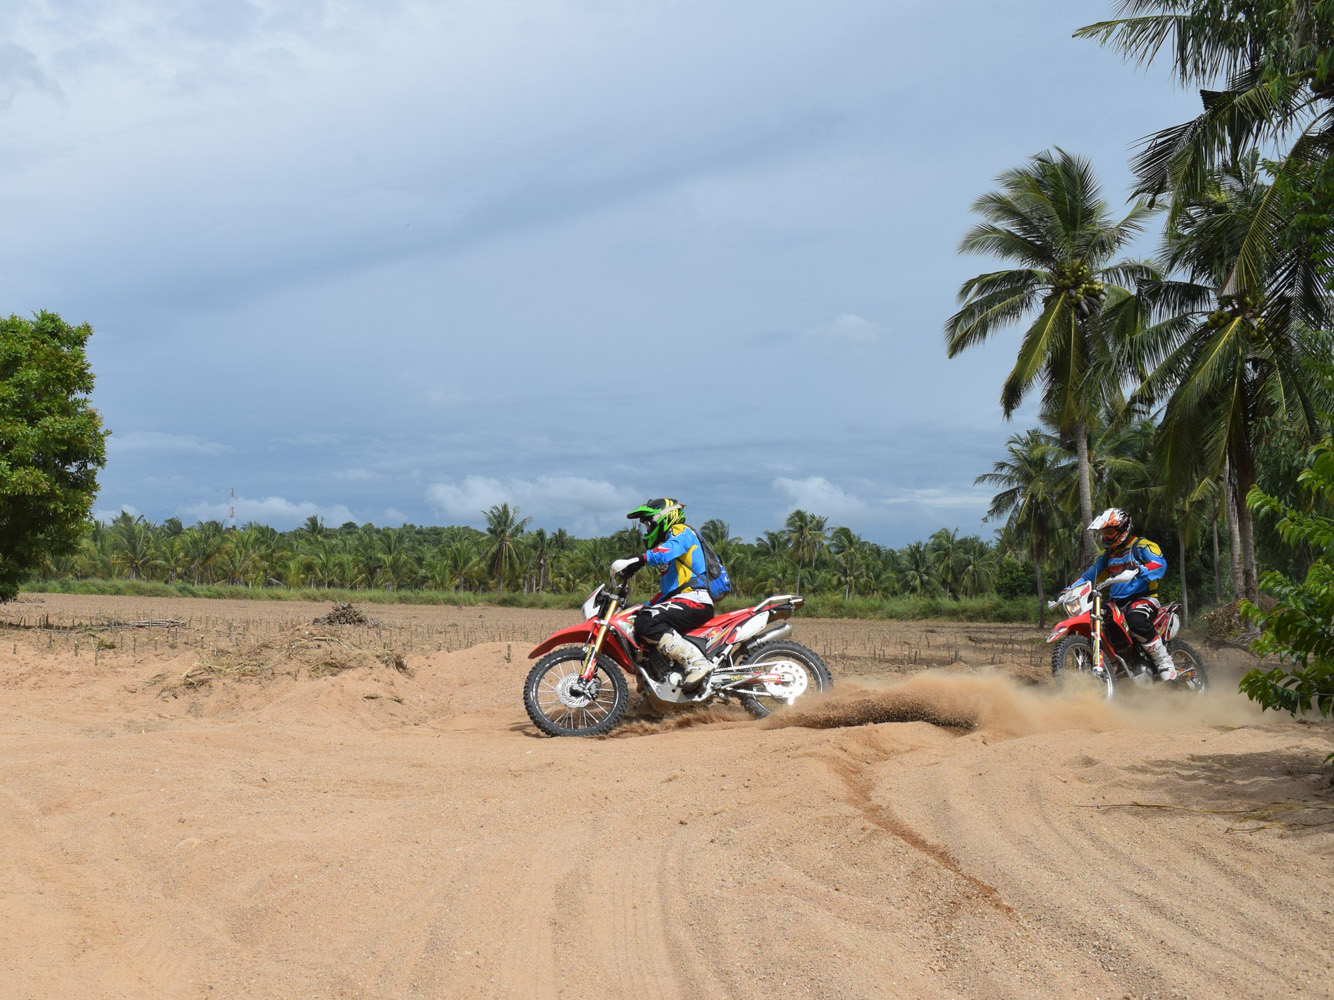 media/plg_solidres_experience/images/996a7121b7bfa4c1754abbf8d46405af/thailand-enduro-reise.jpg